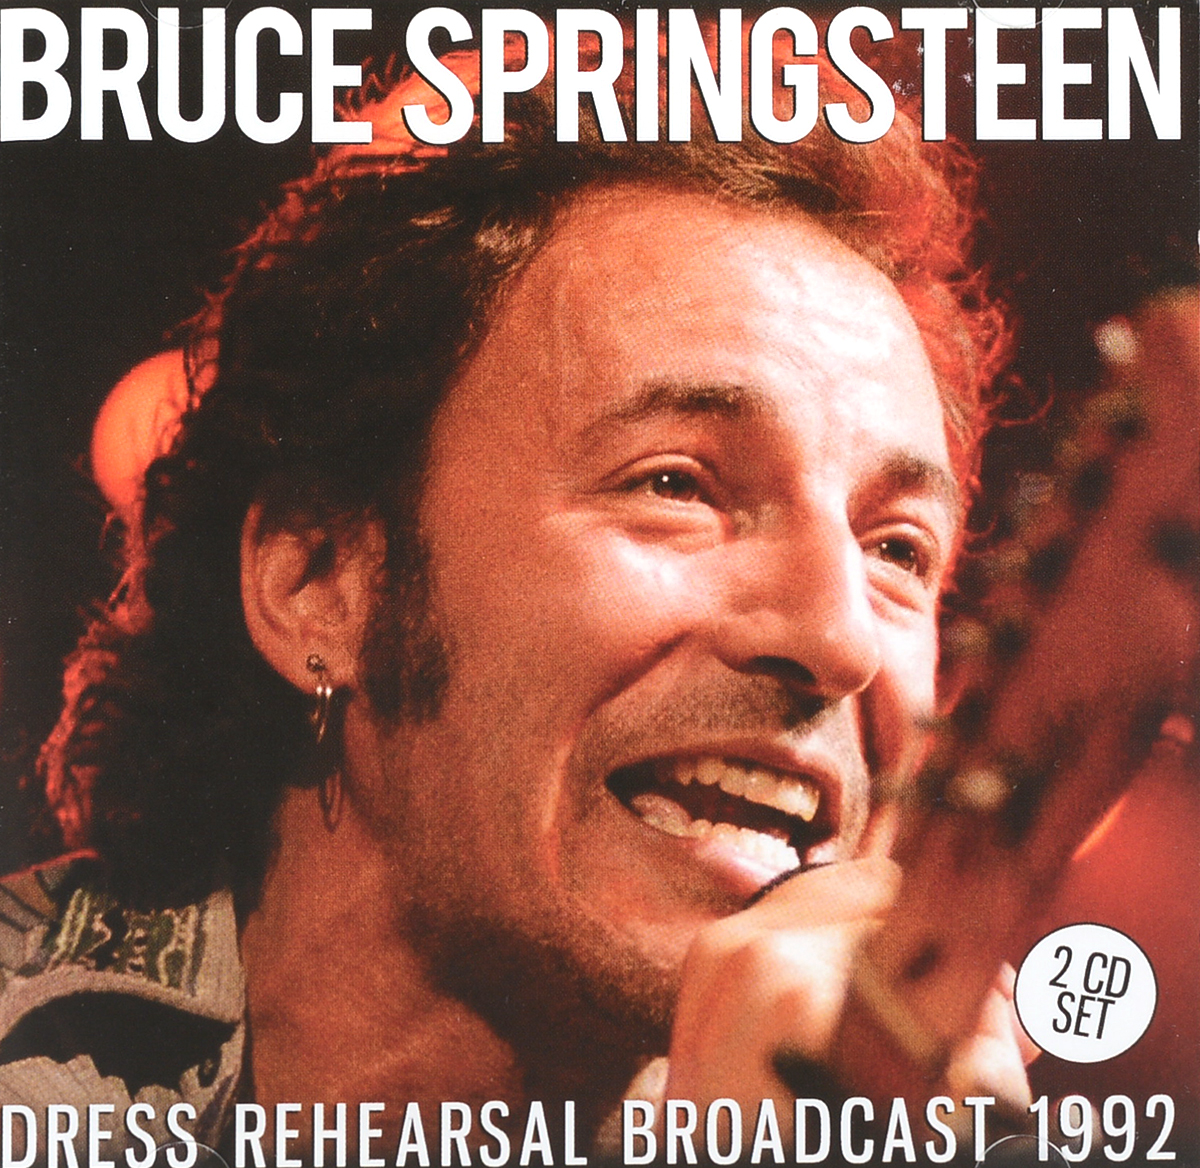 Брюс Спрингстин Bruce Springsteen. Dress Rehearsal Broadcast 1992 (2 CD) bruce springsteen live in dublin blu ray